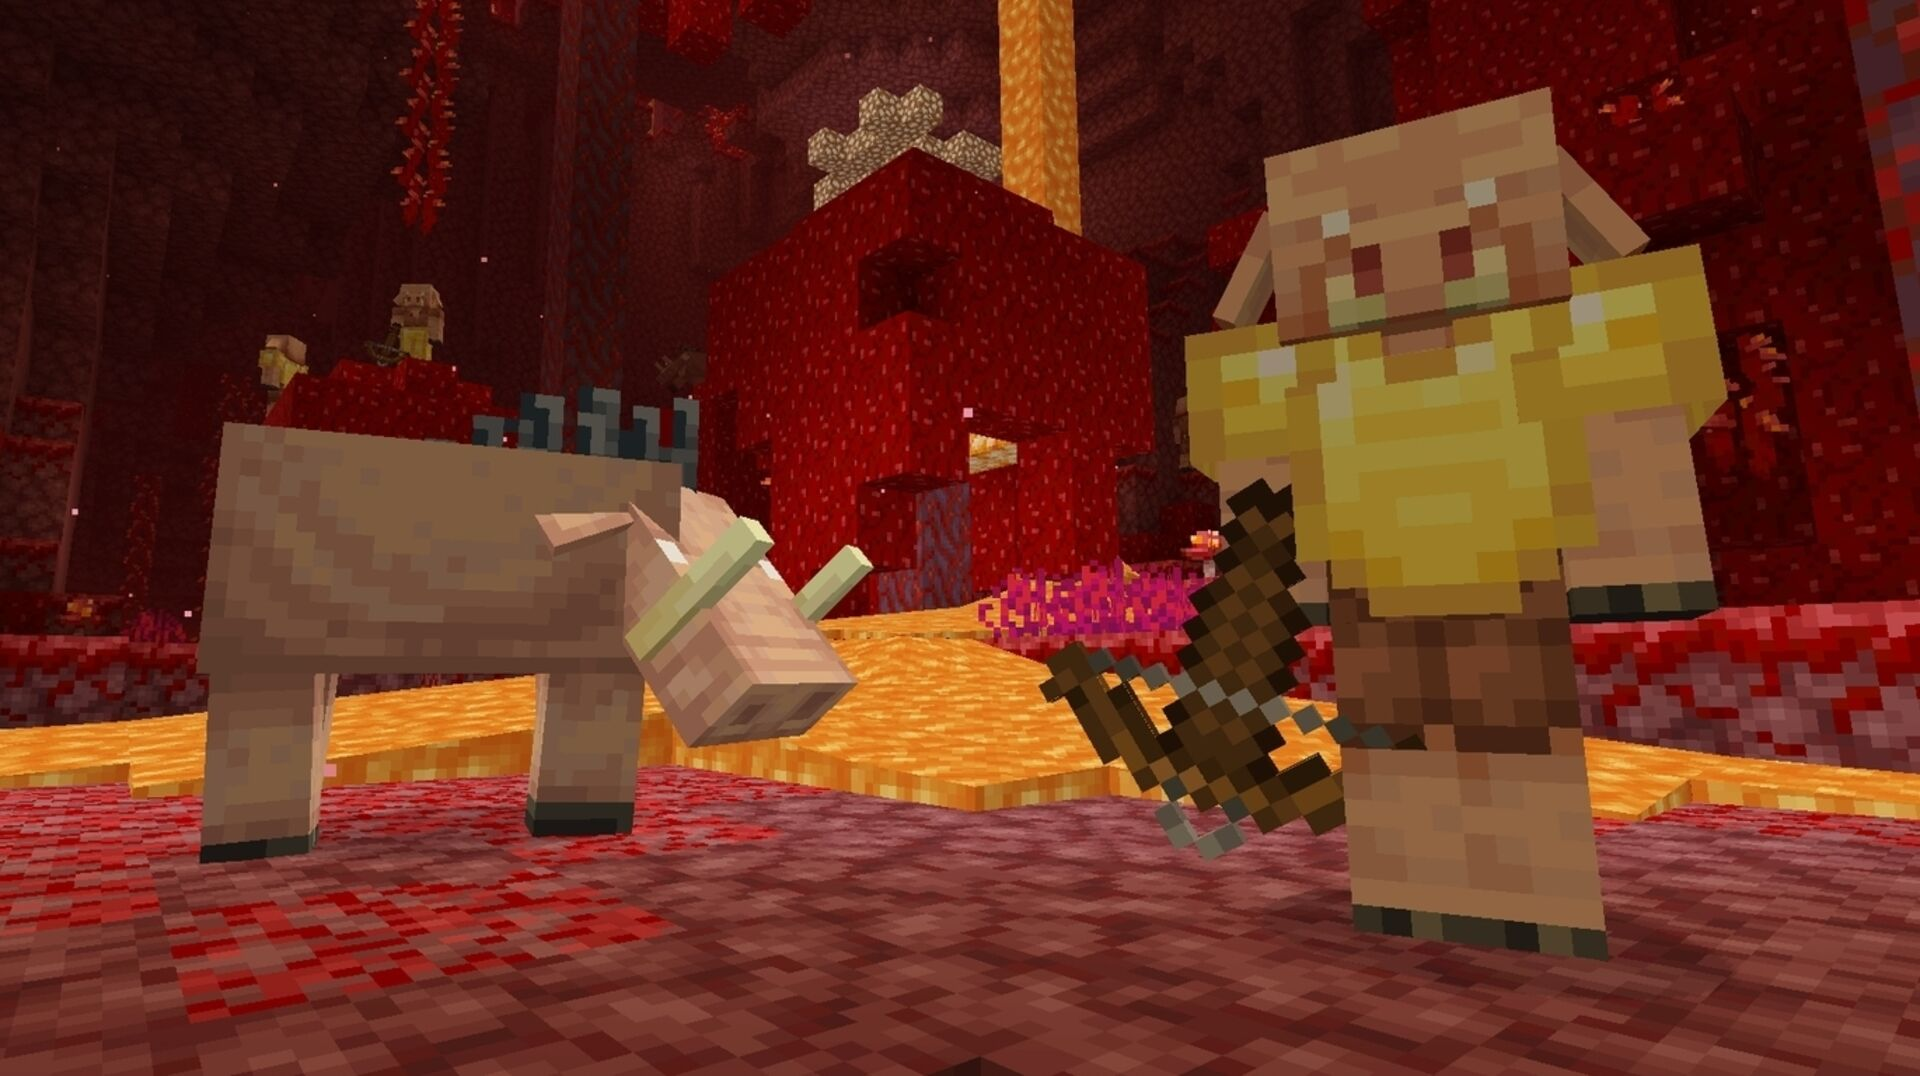 Minecraft S Nether Update Finally Makes Its Hell Dimension More Habitable Eurogamer Net